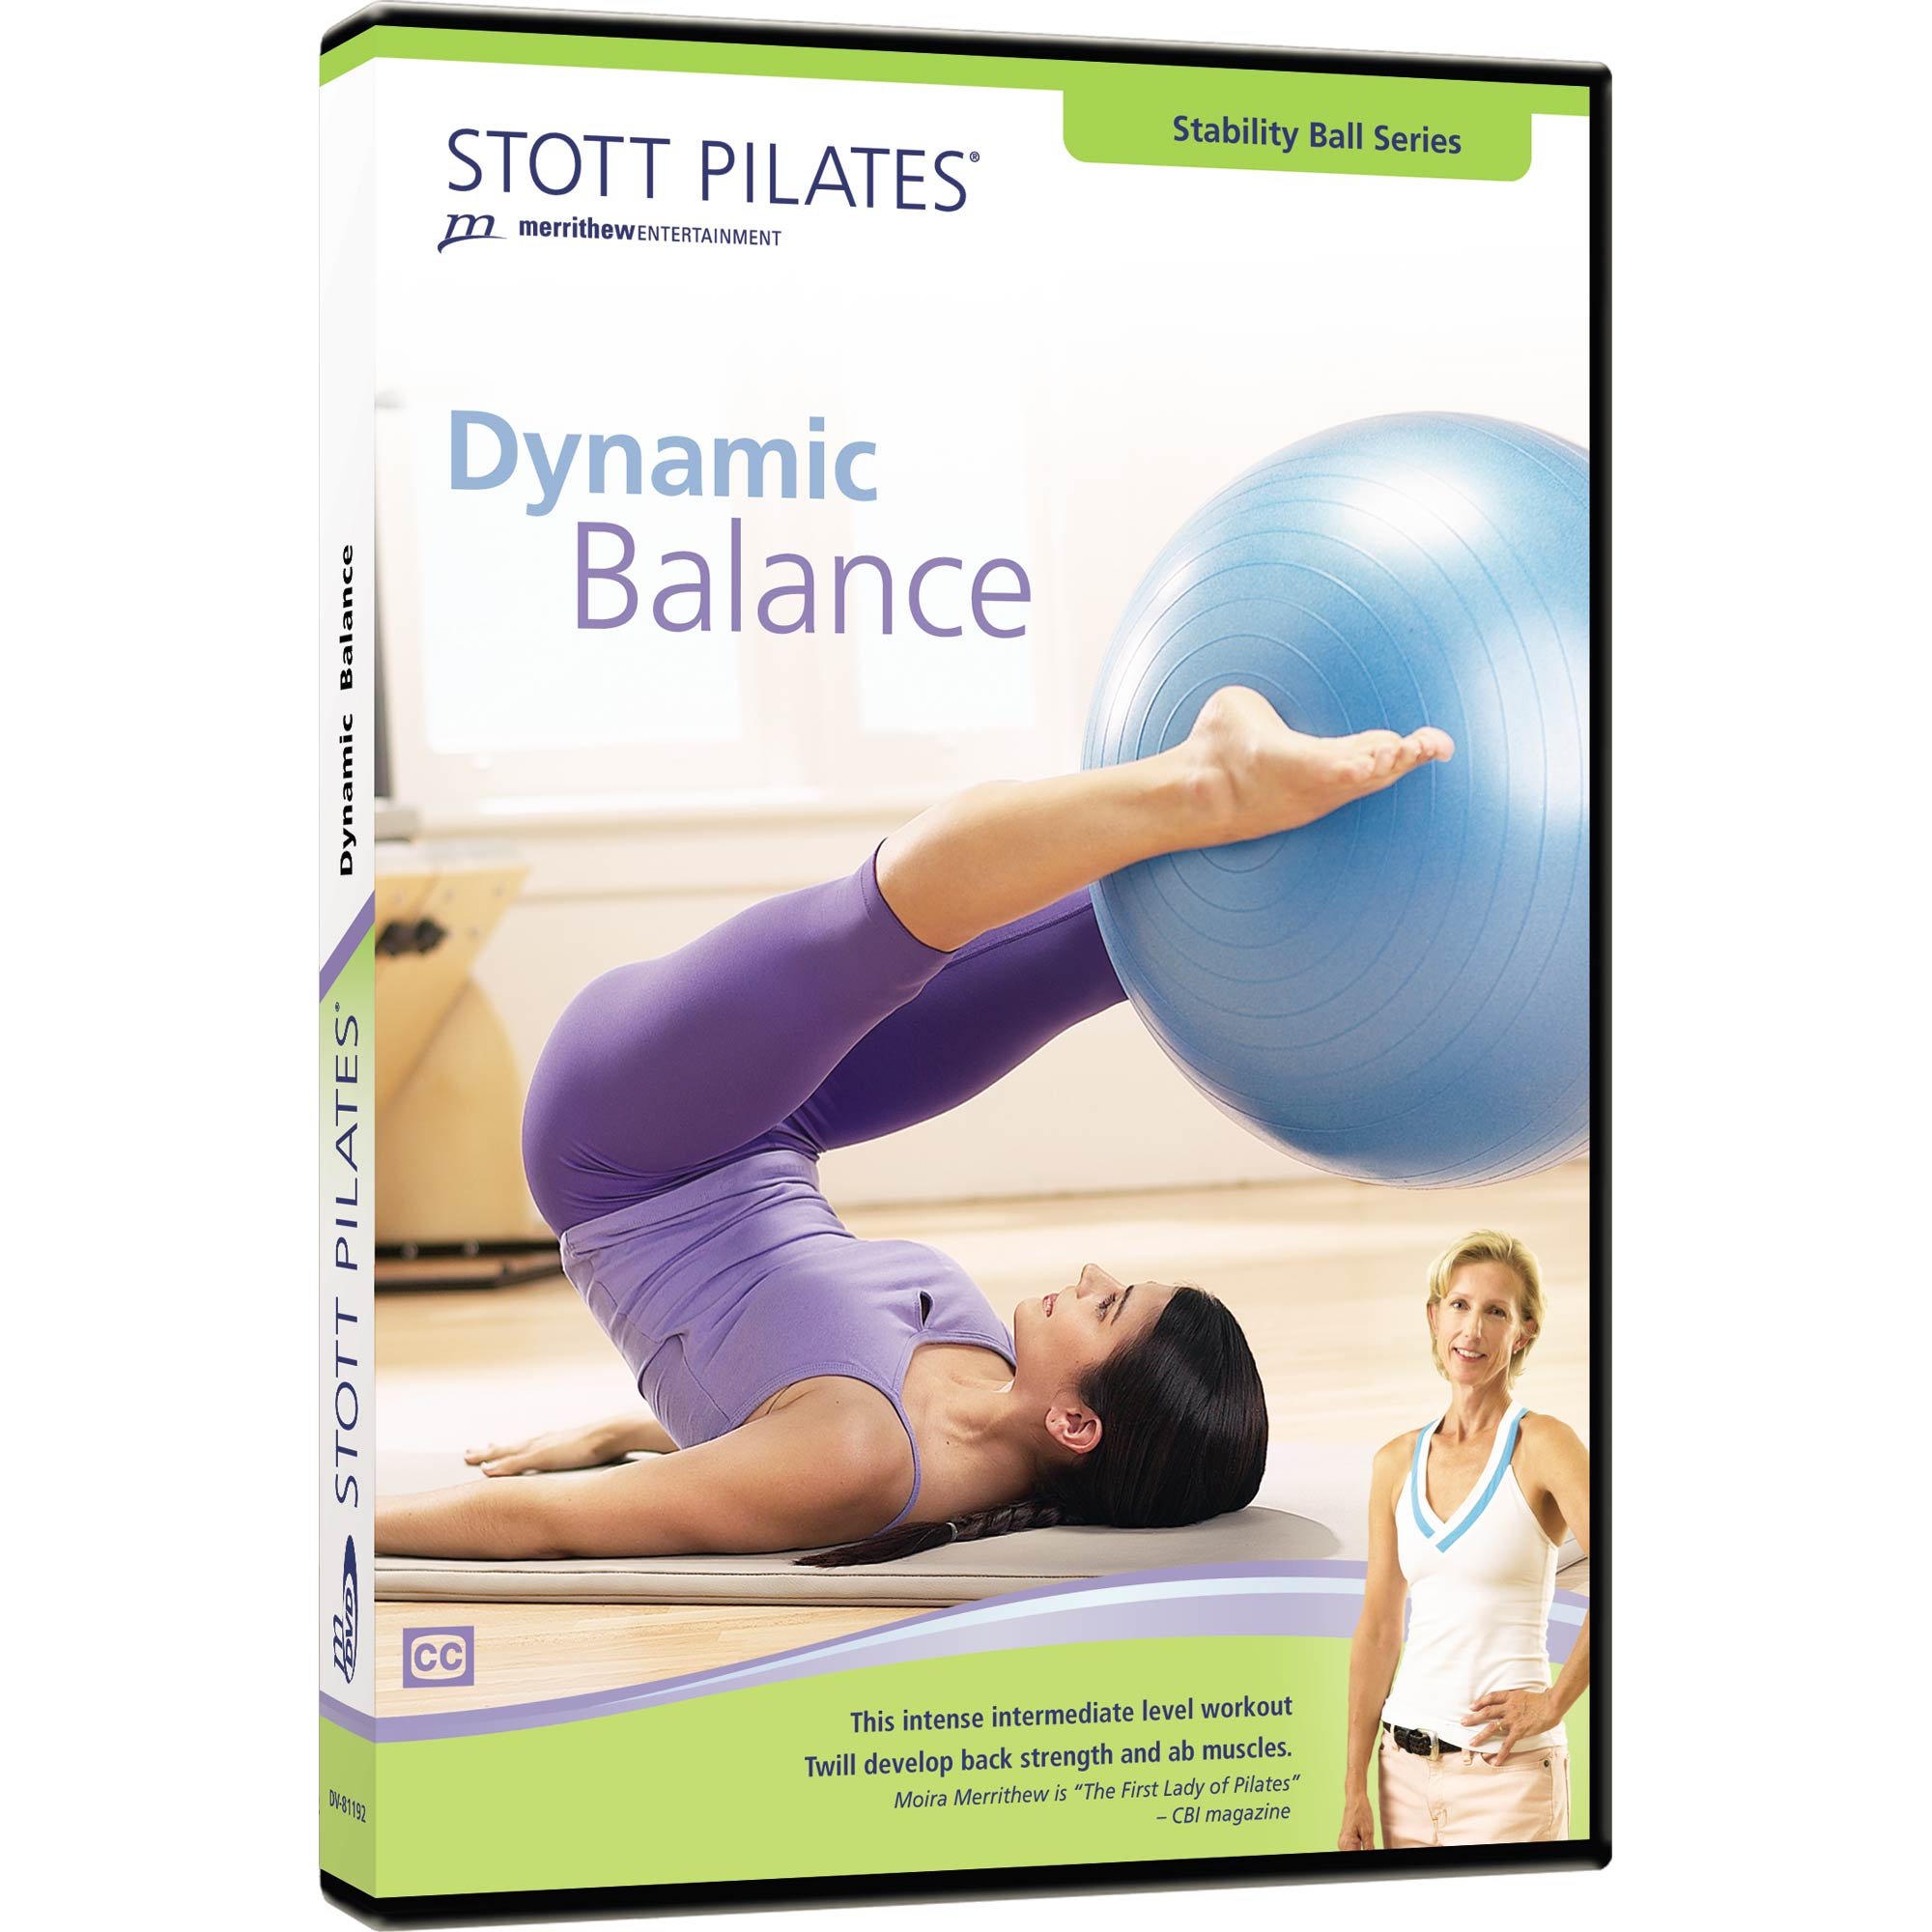 STOTT PILATES Advanced Cadillac Movie HD free download 720p